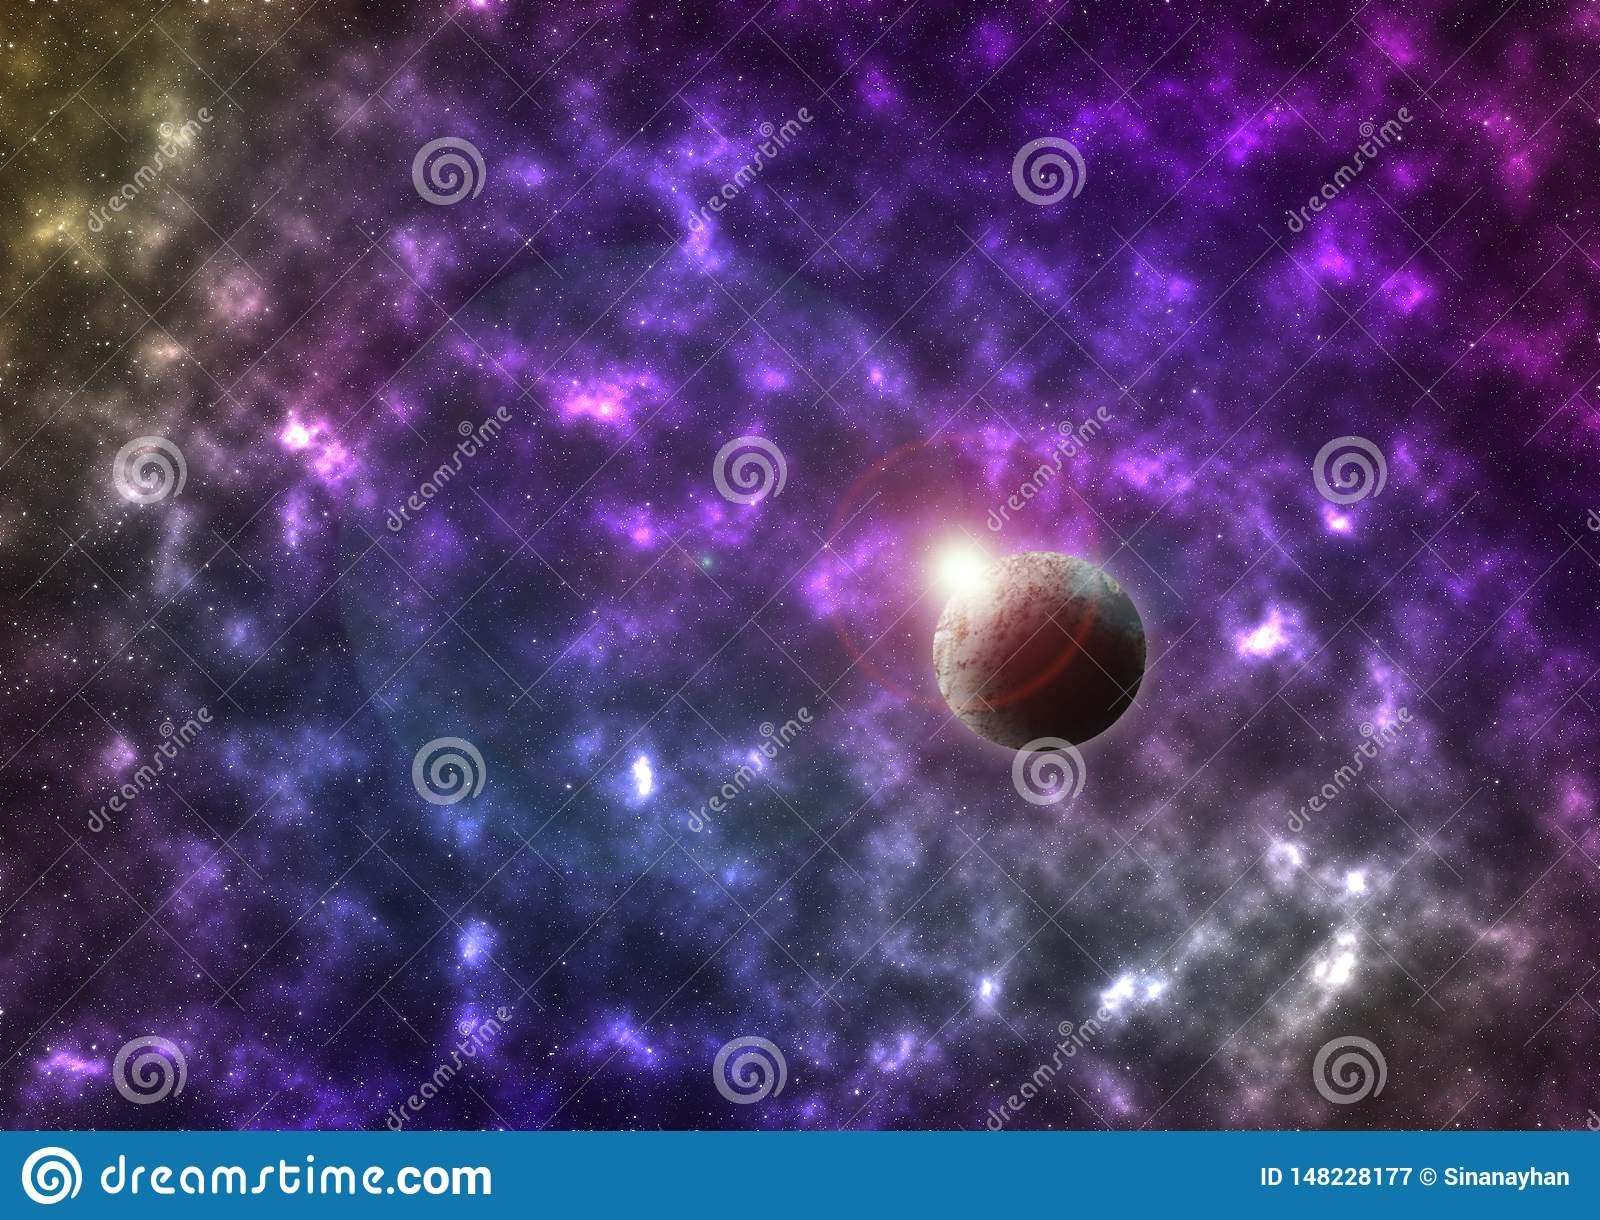 Vector bright colorful cosmos illustration with planet